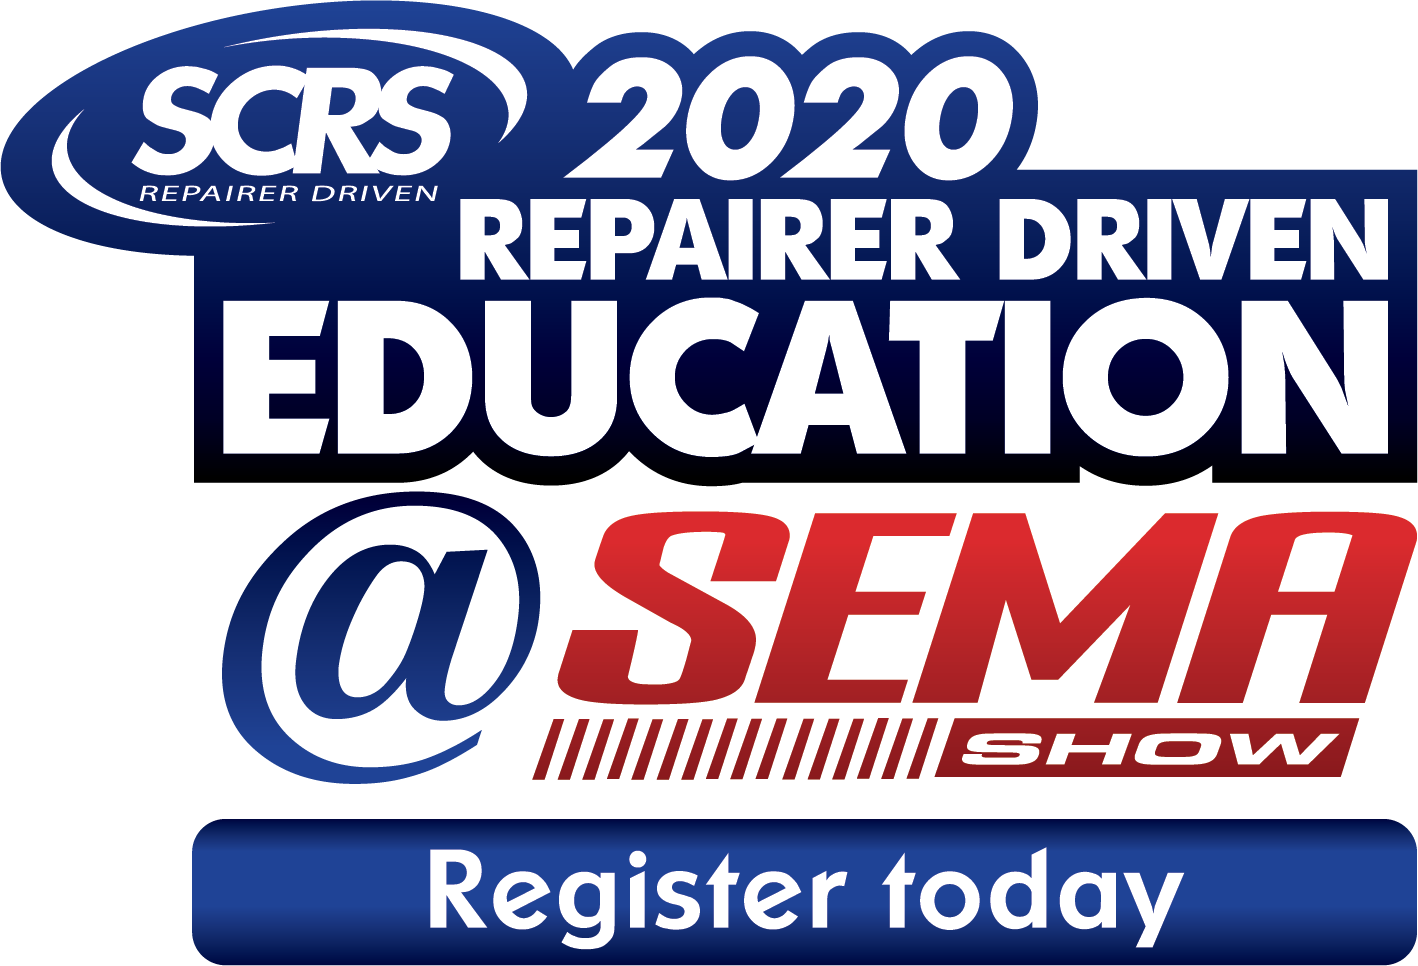 Register now for SCRS Repairer Driven Education at SEMA 2020!